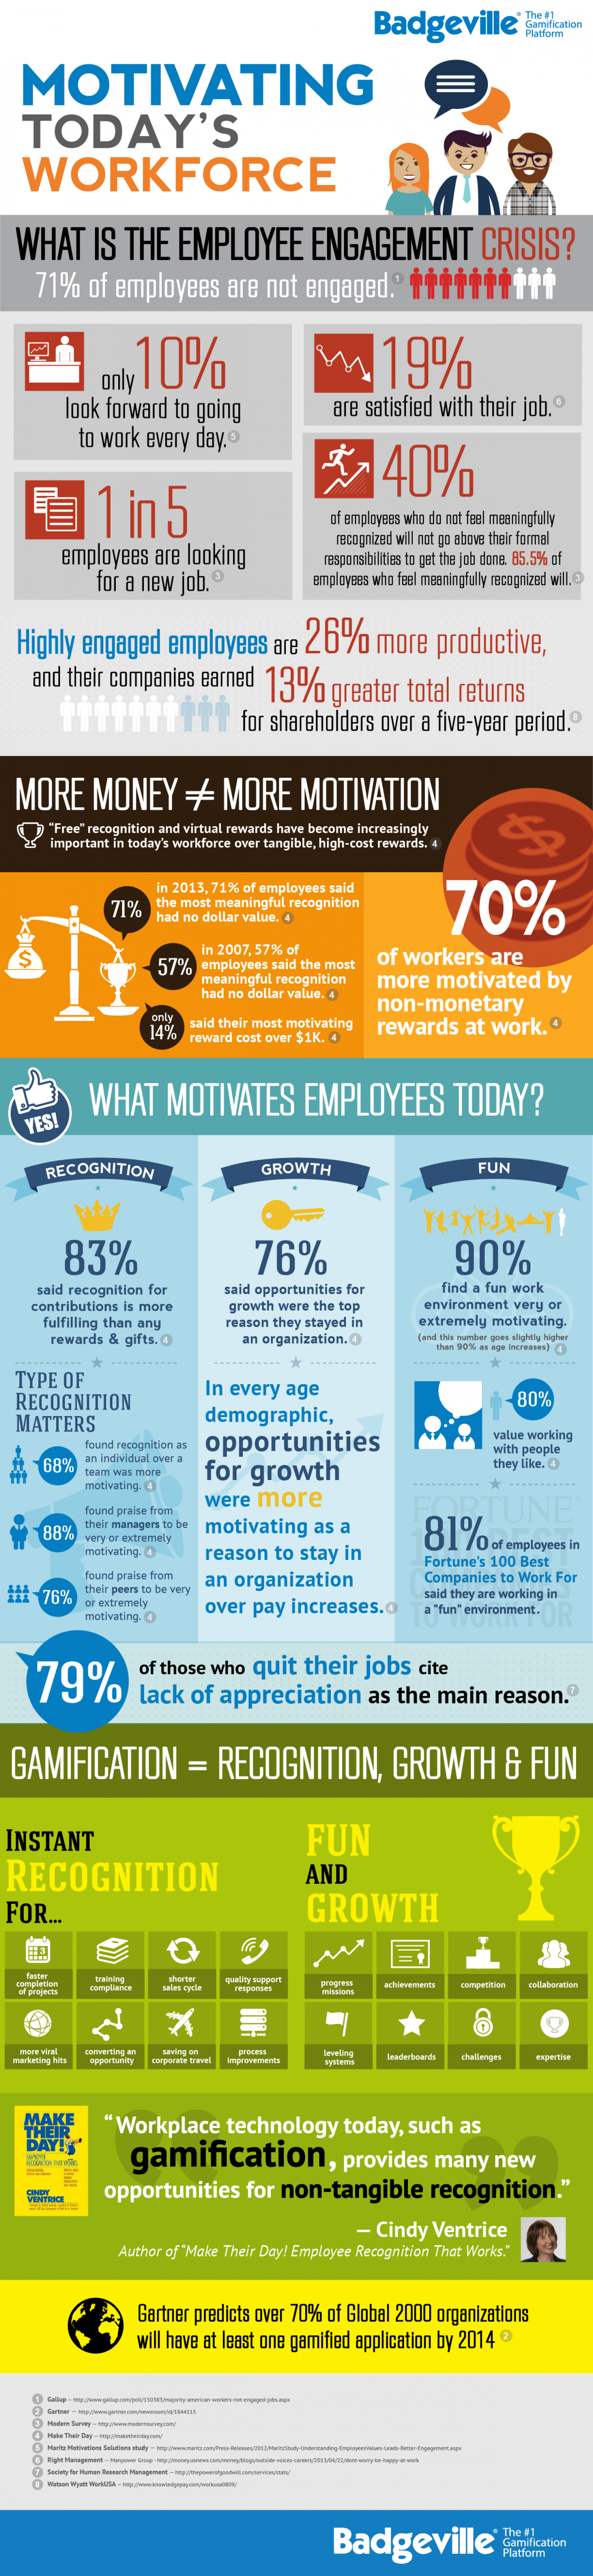 Motivating Today's Workforce Infographic